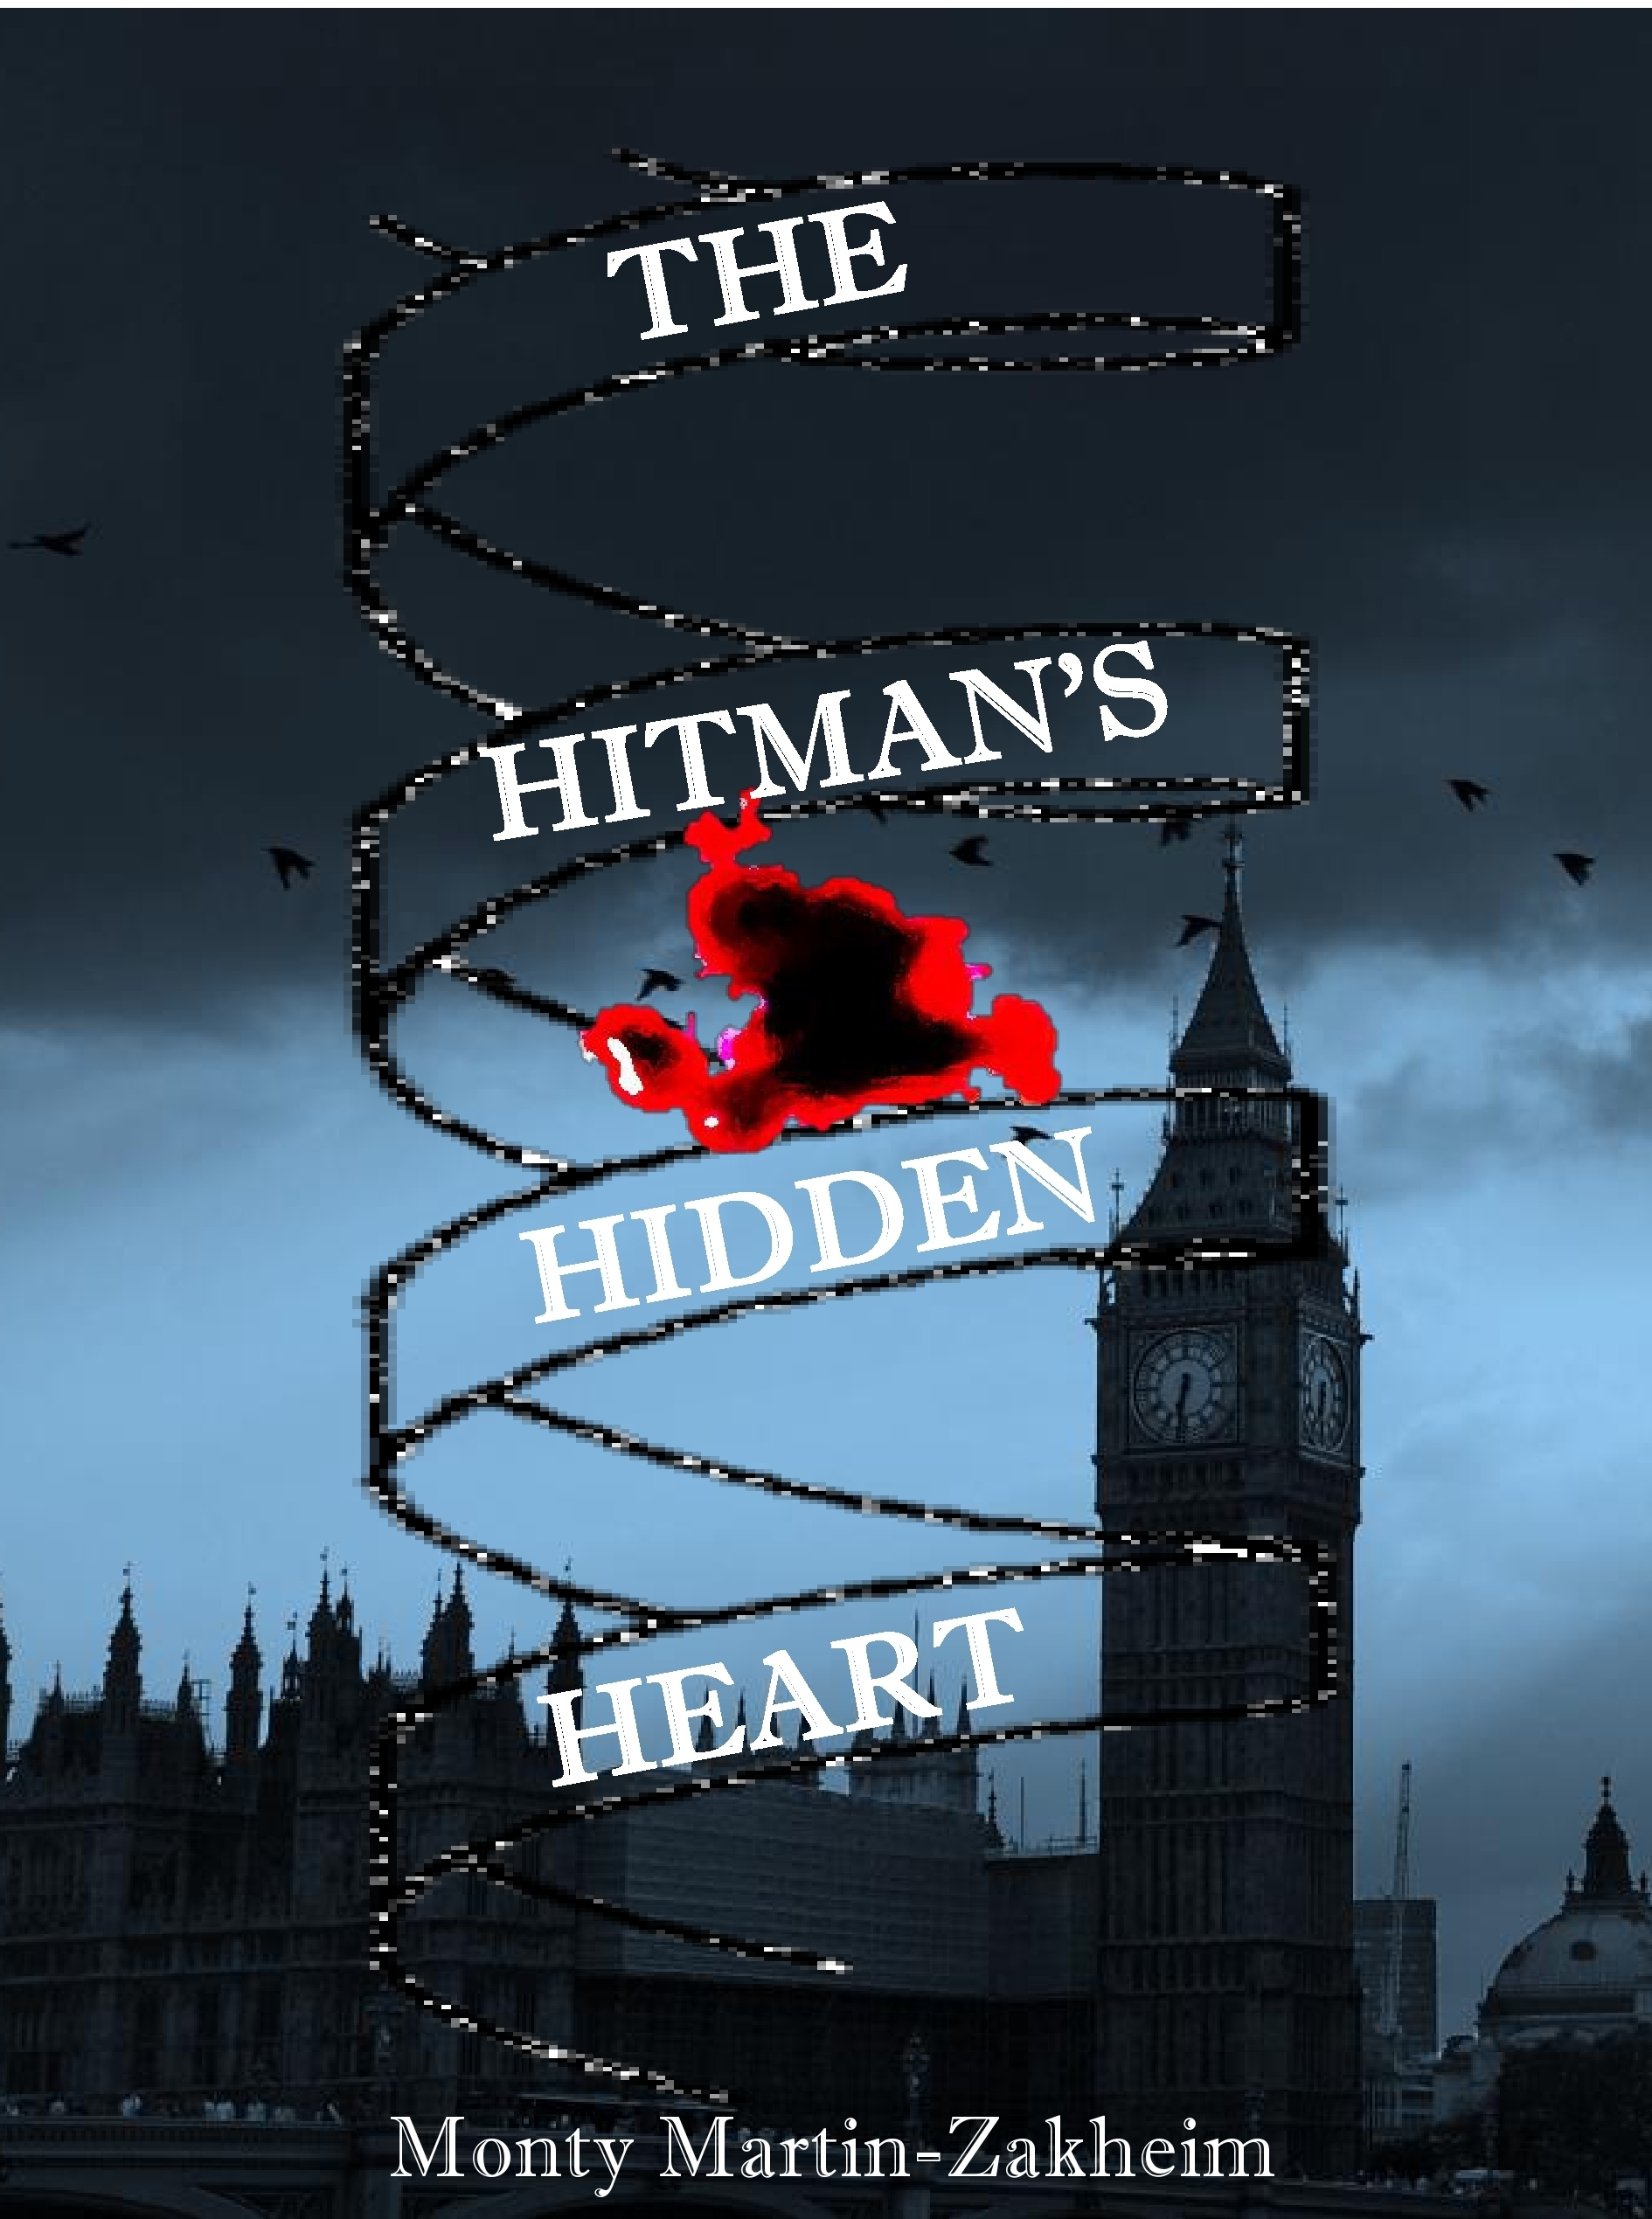 The Hitmans Hidden Heart Monty Martin-Zakheim